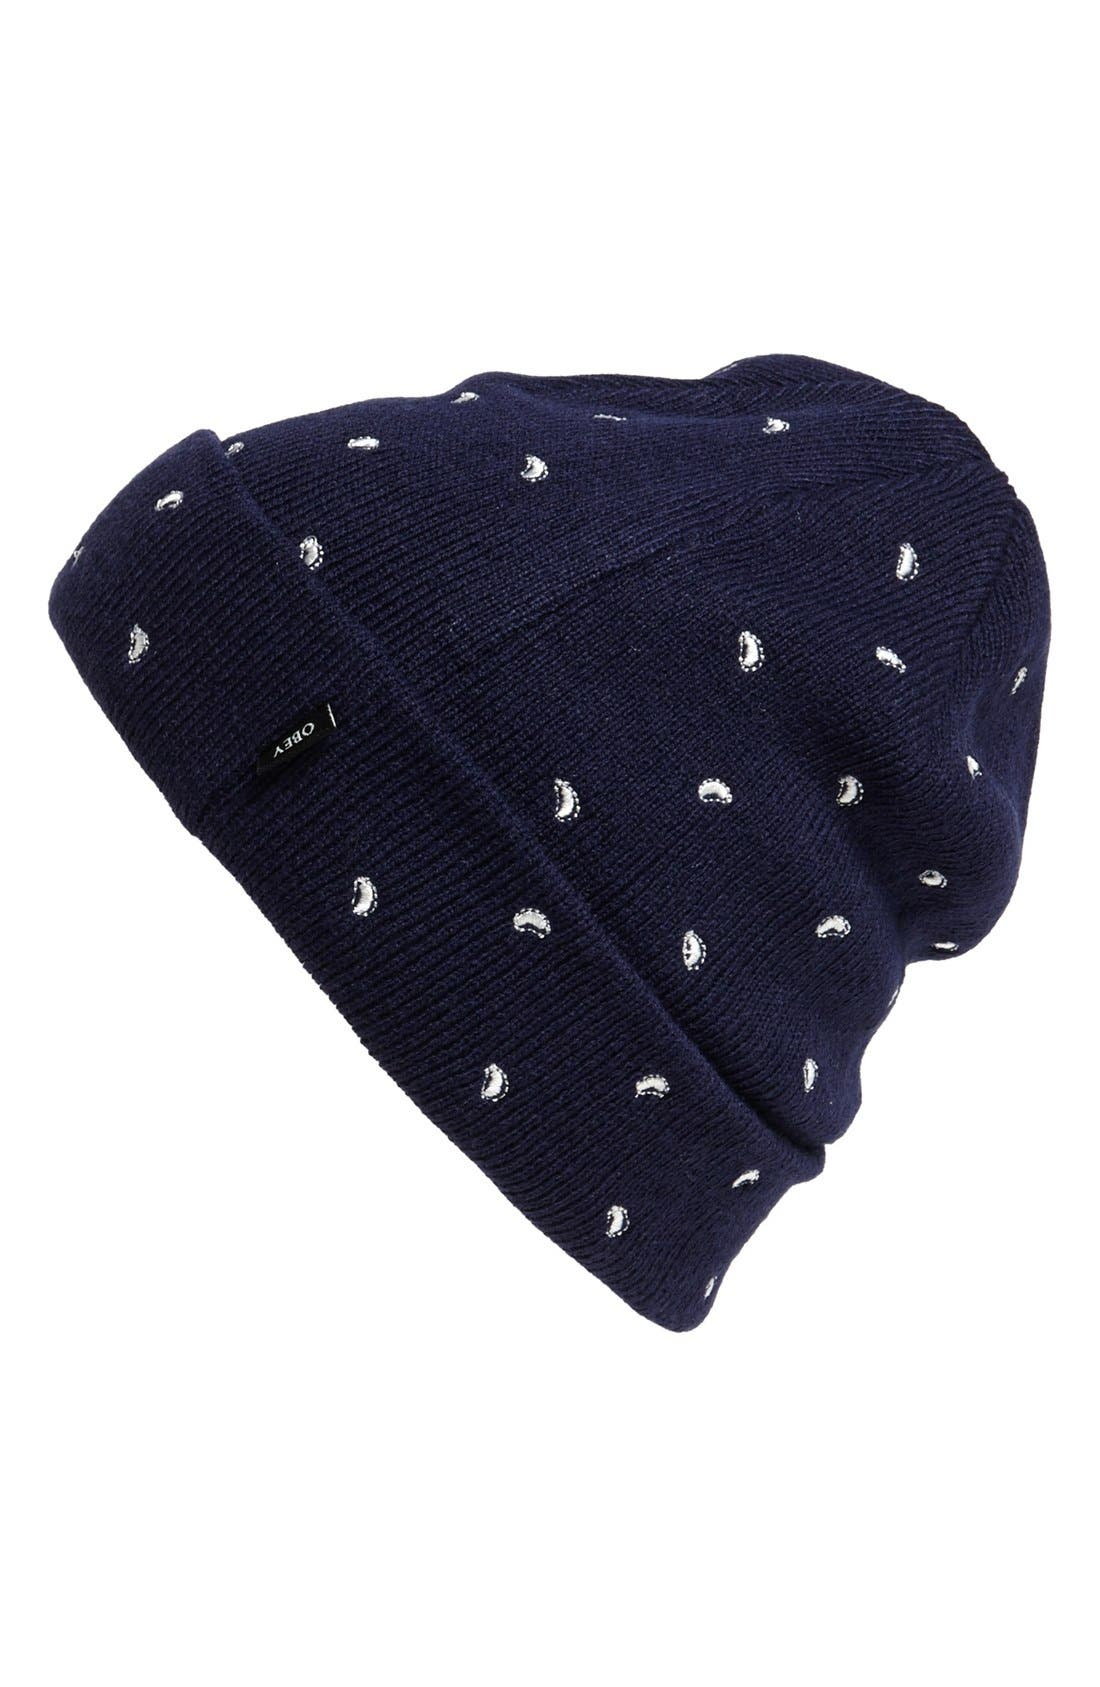 Main Image - Obey 'Dynasty' Knit Cap